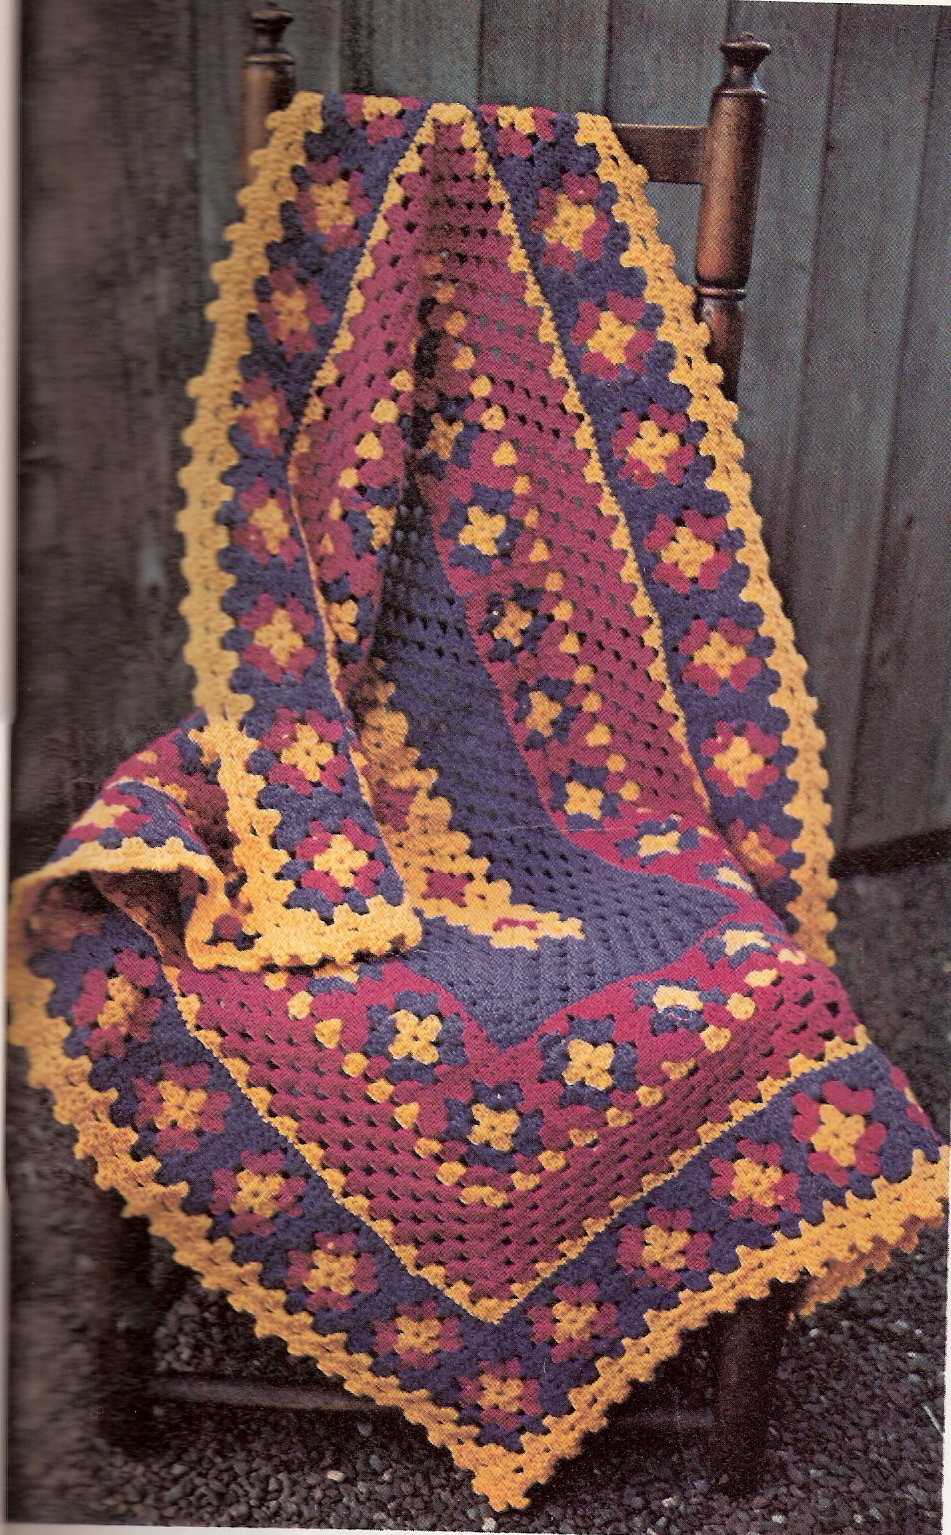 Crochet Patterns Granny Square Afghan : CROCHET DIAMOND SQUARE AFGHAN PATTERN Crochet Patterns